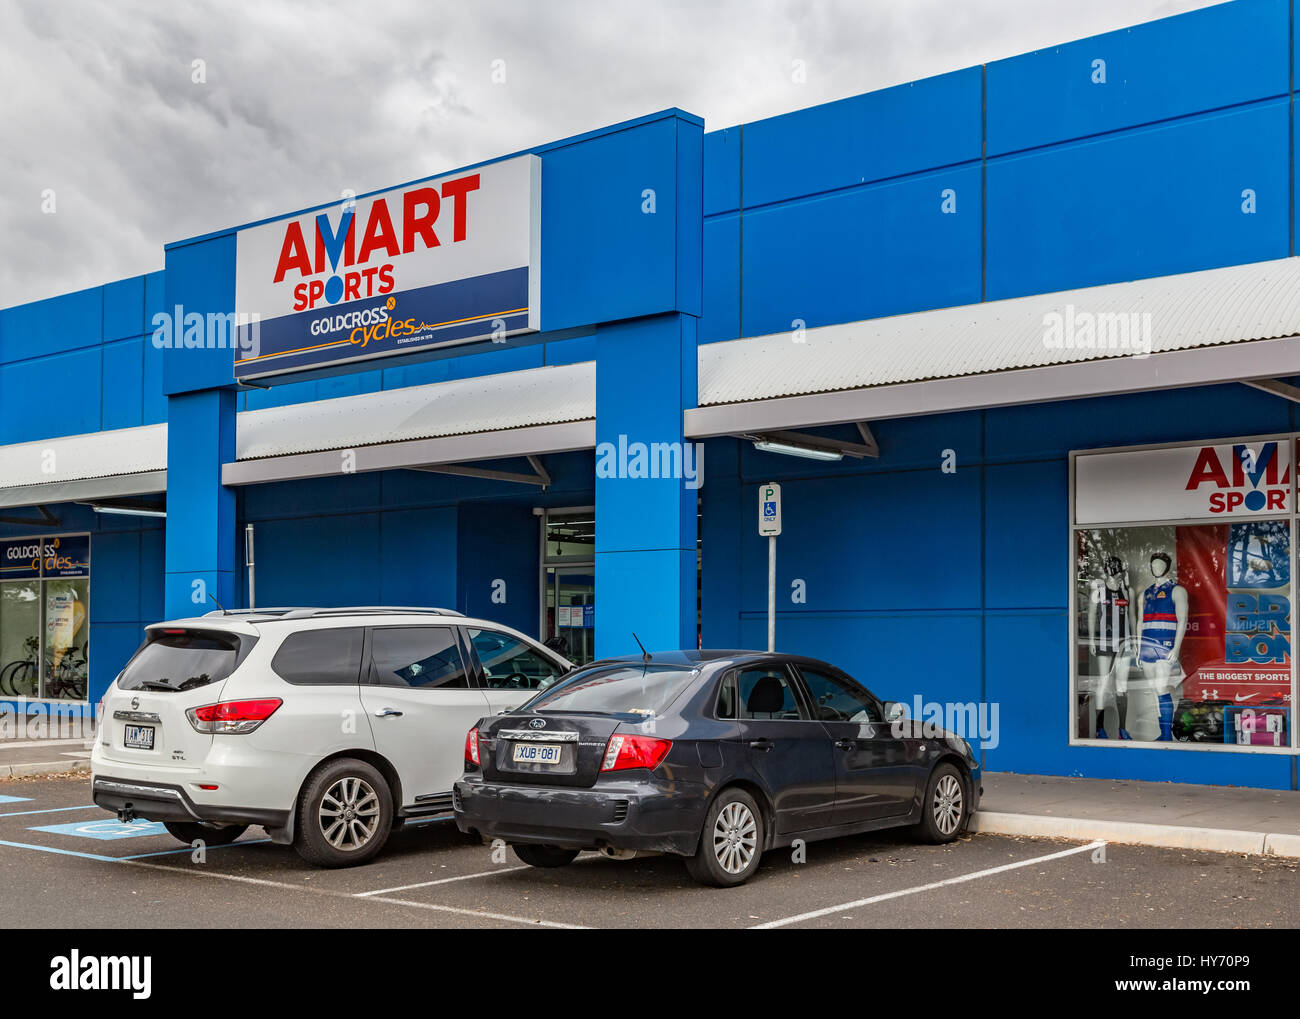 Amart Sports Store At Watergardens Shopping Precinct